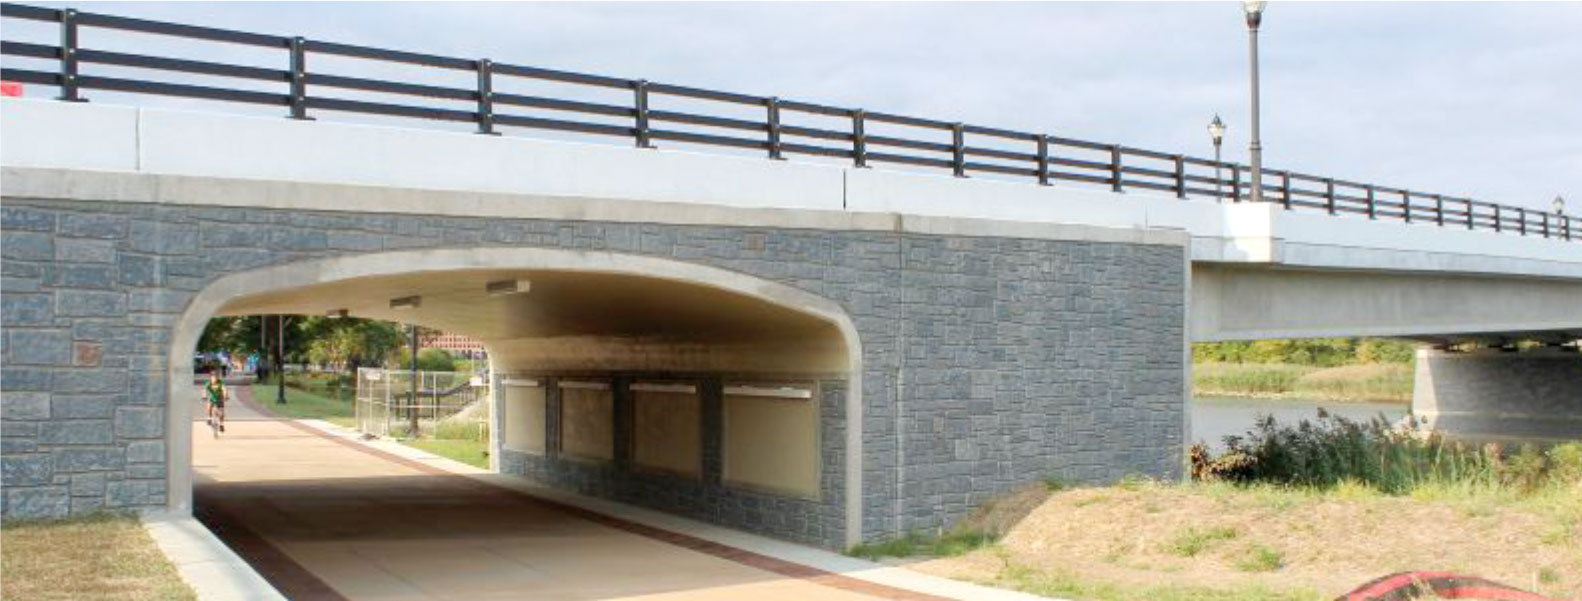 View of the completed underpass for the shared-use path.